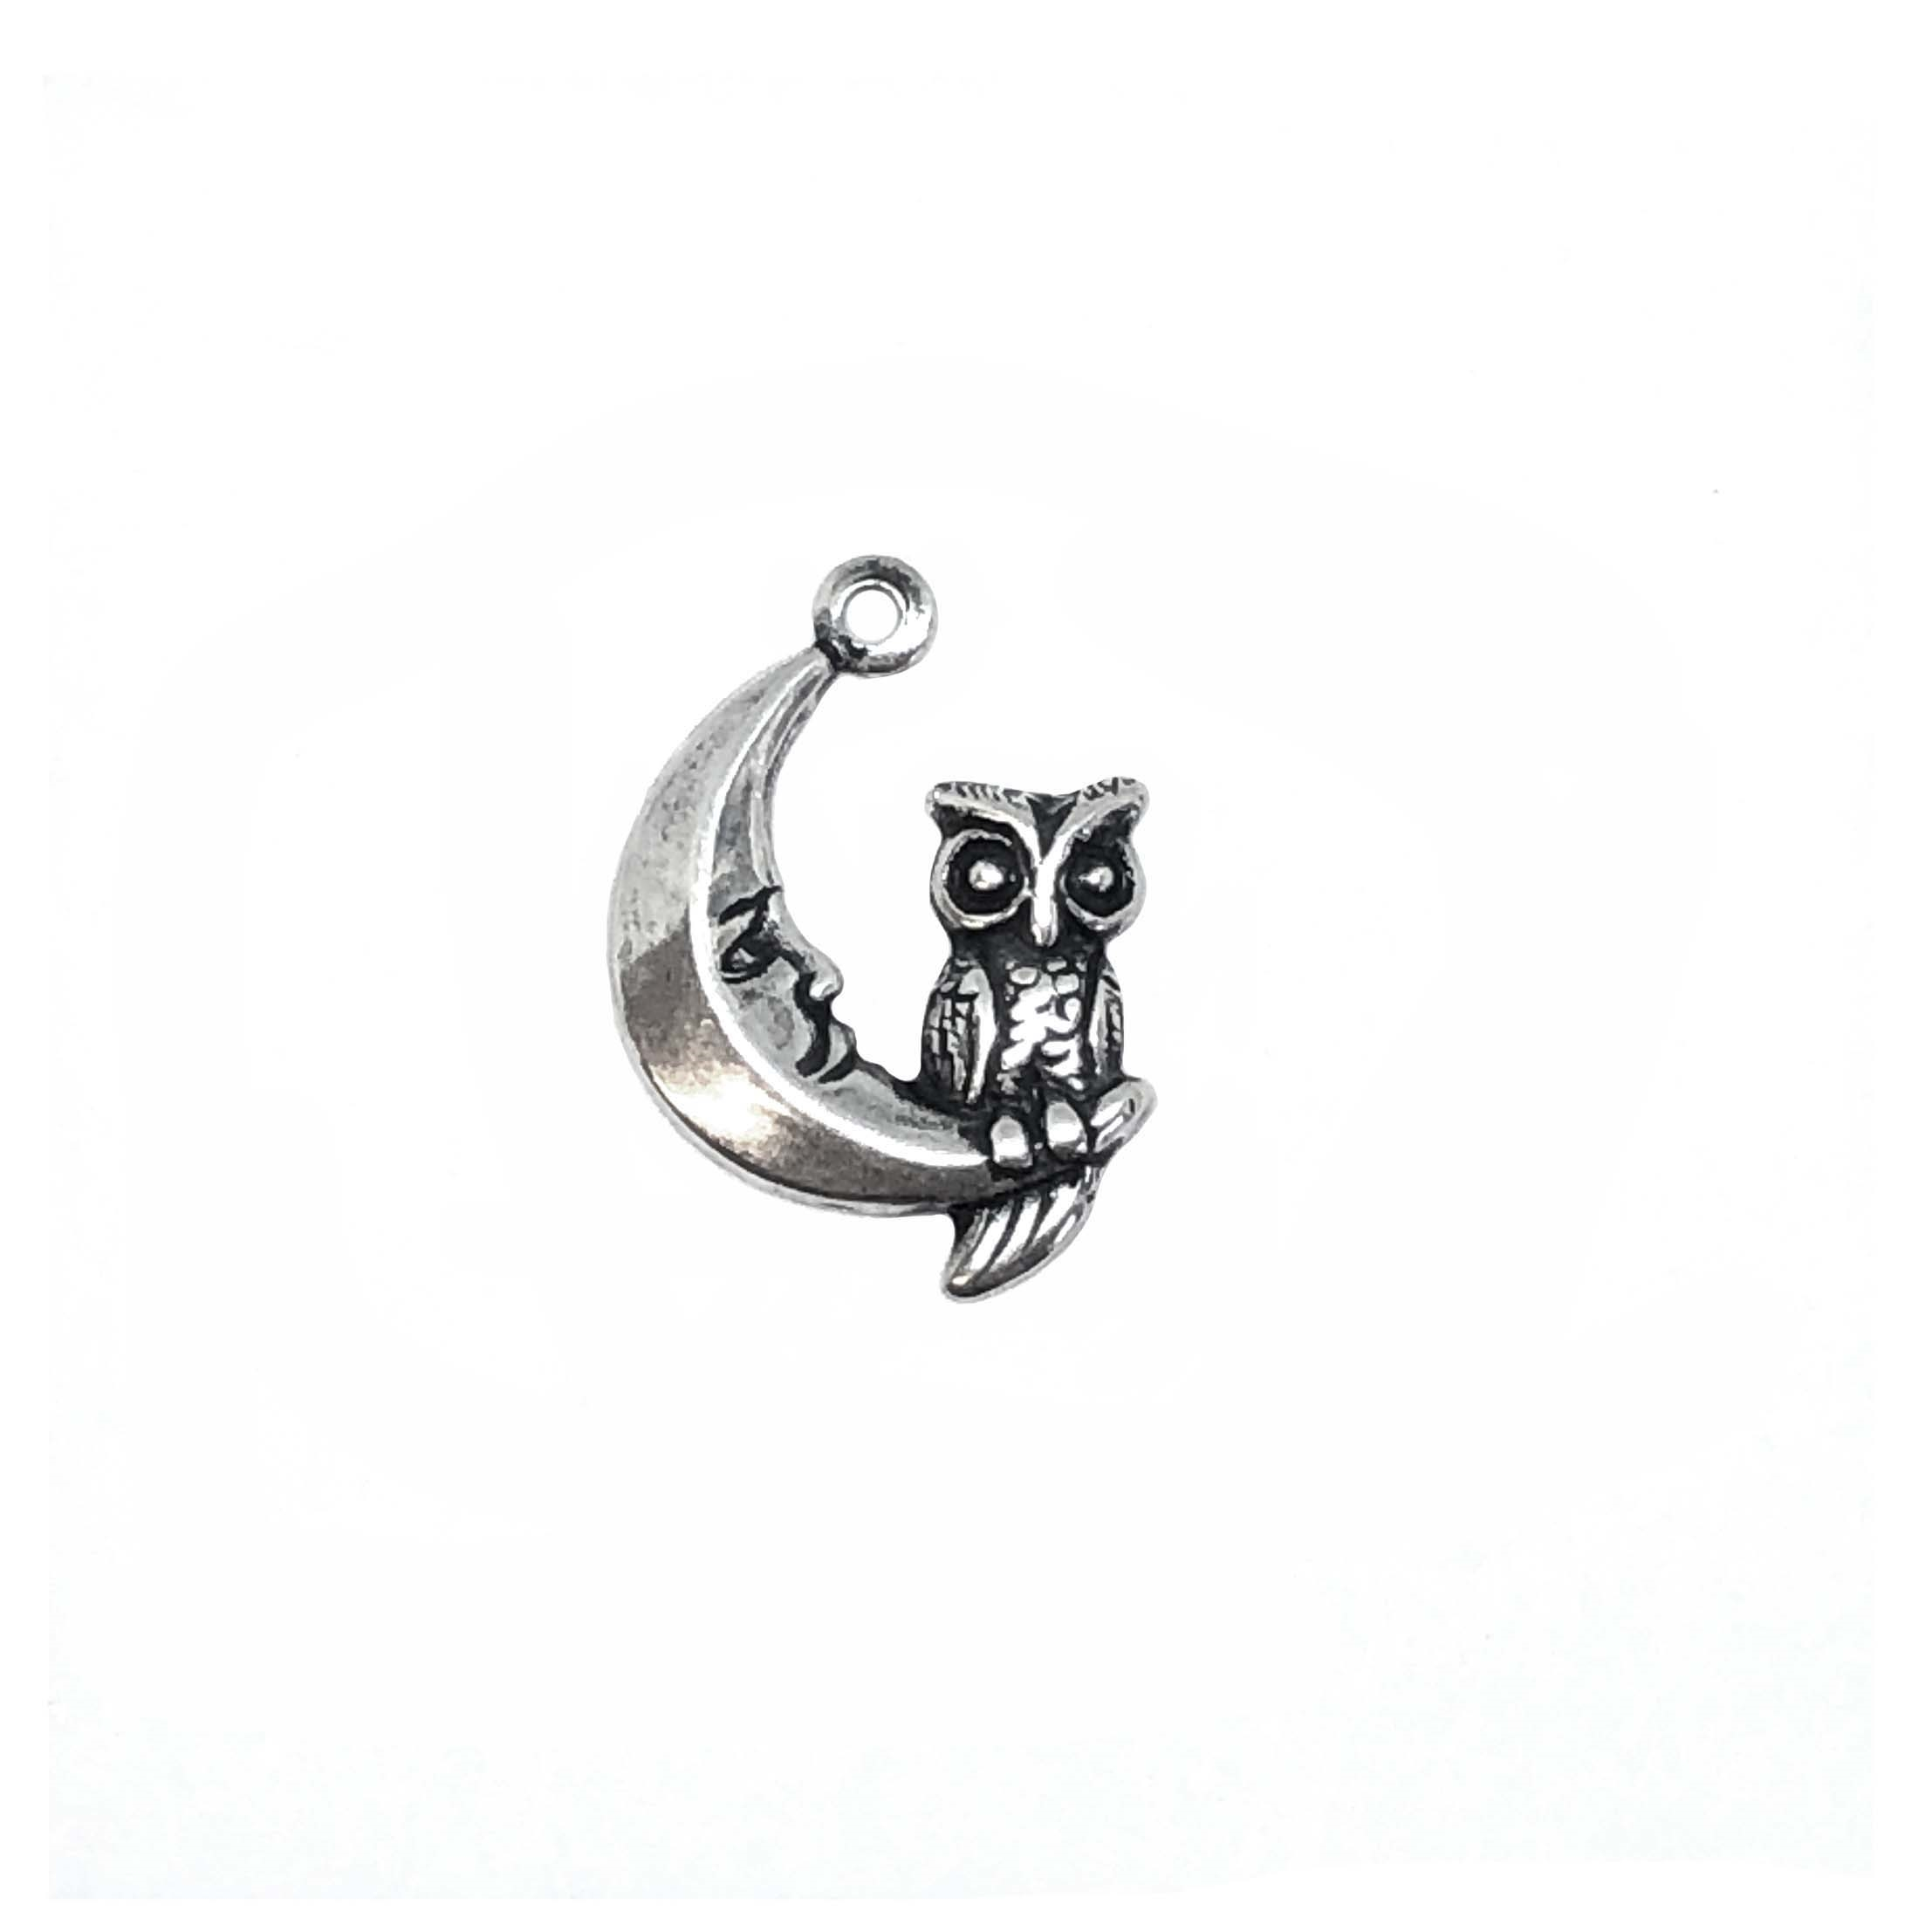 Owl, Moon, Stamping, Silverware Silverplate, Charm, 17 x 14mm